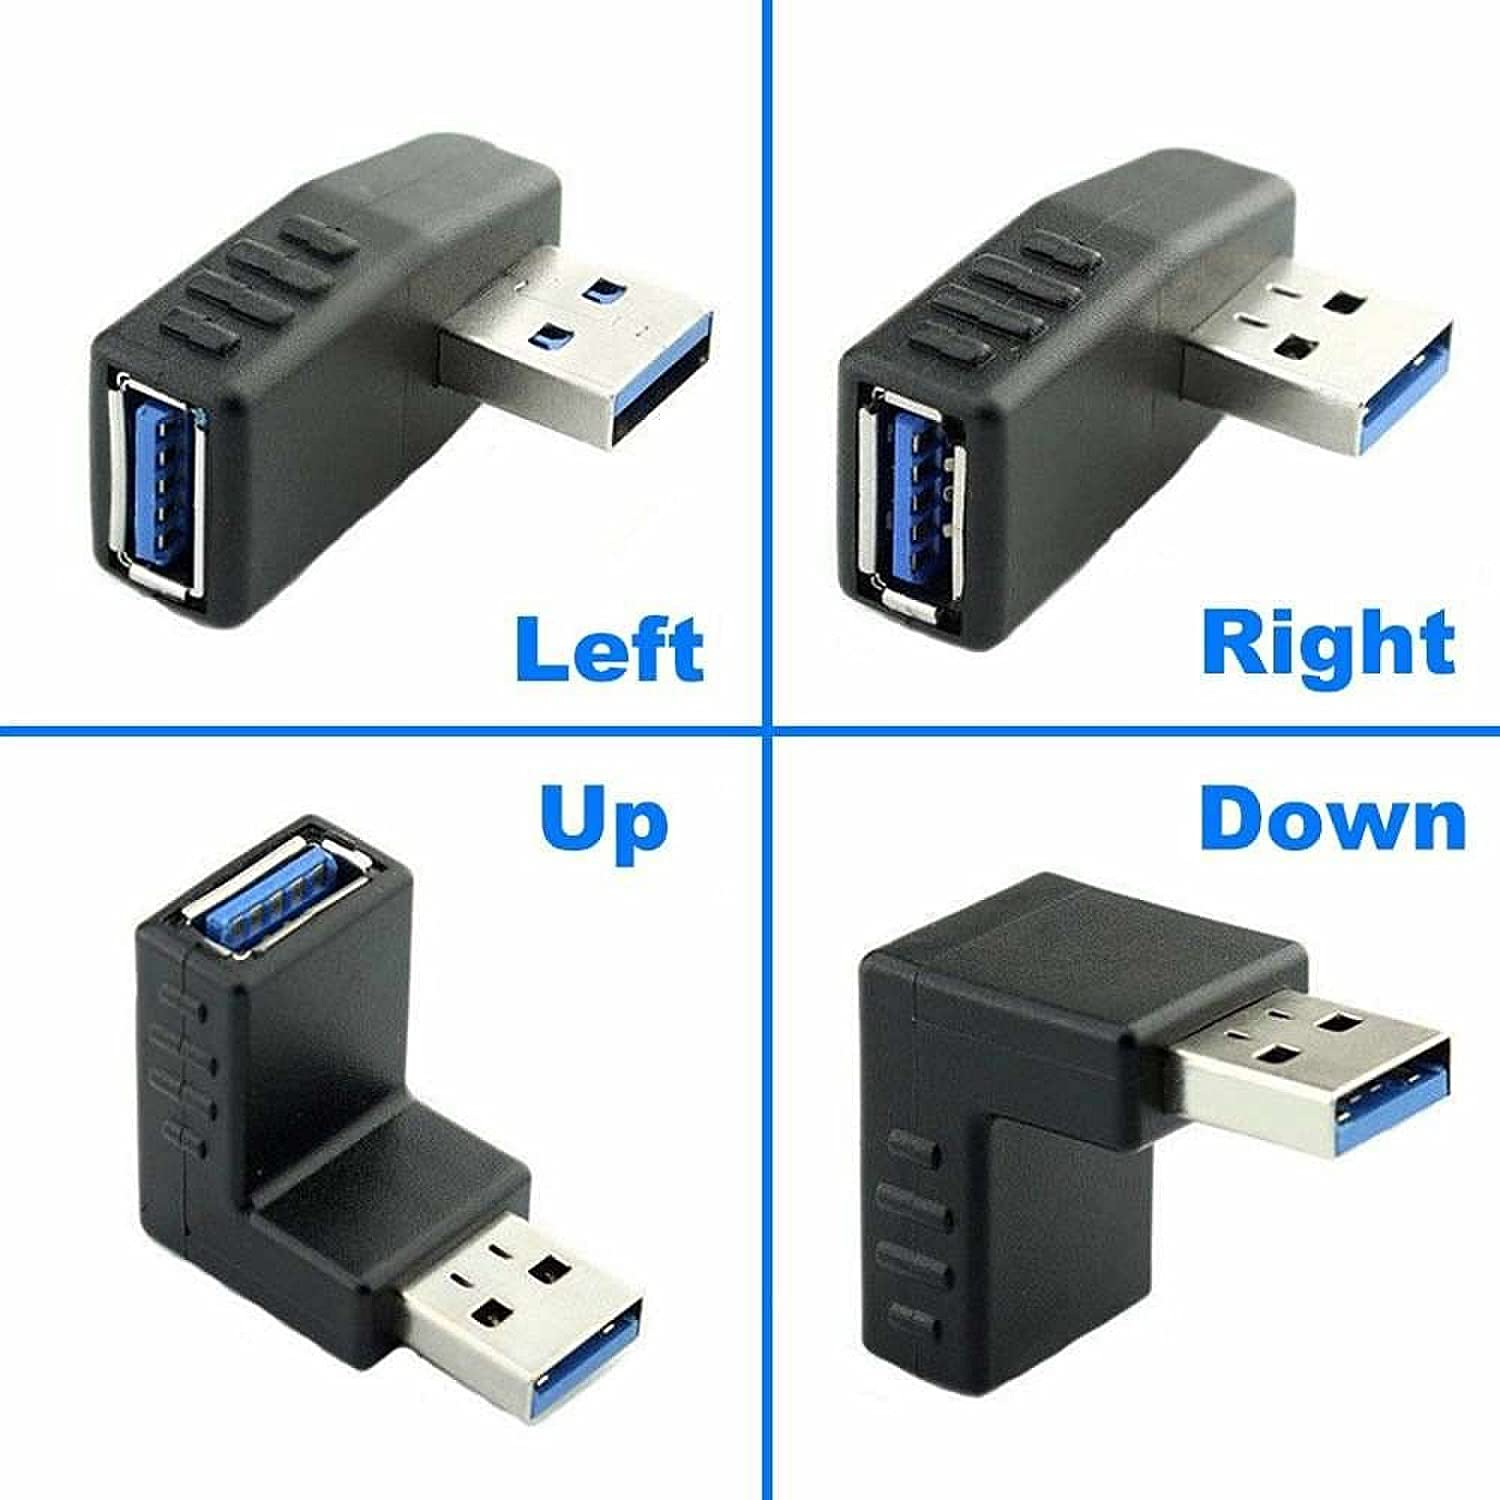 90/° USB Extension Adapter YANSHG USB 3.0 Male to Female 90 Degrees Converter Adapter up//Down//Left//Right